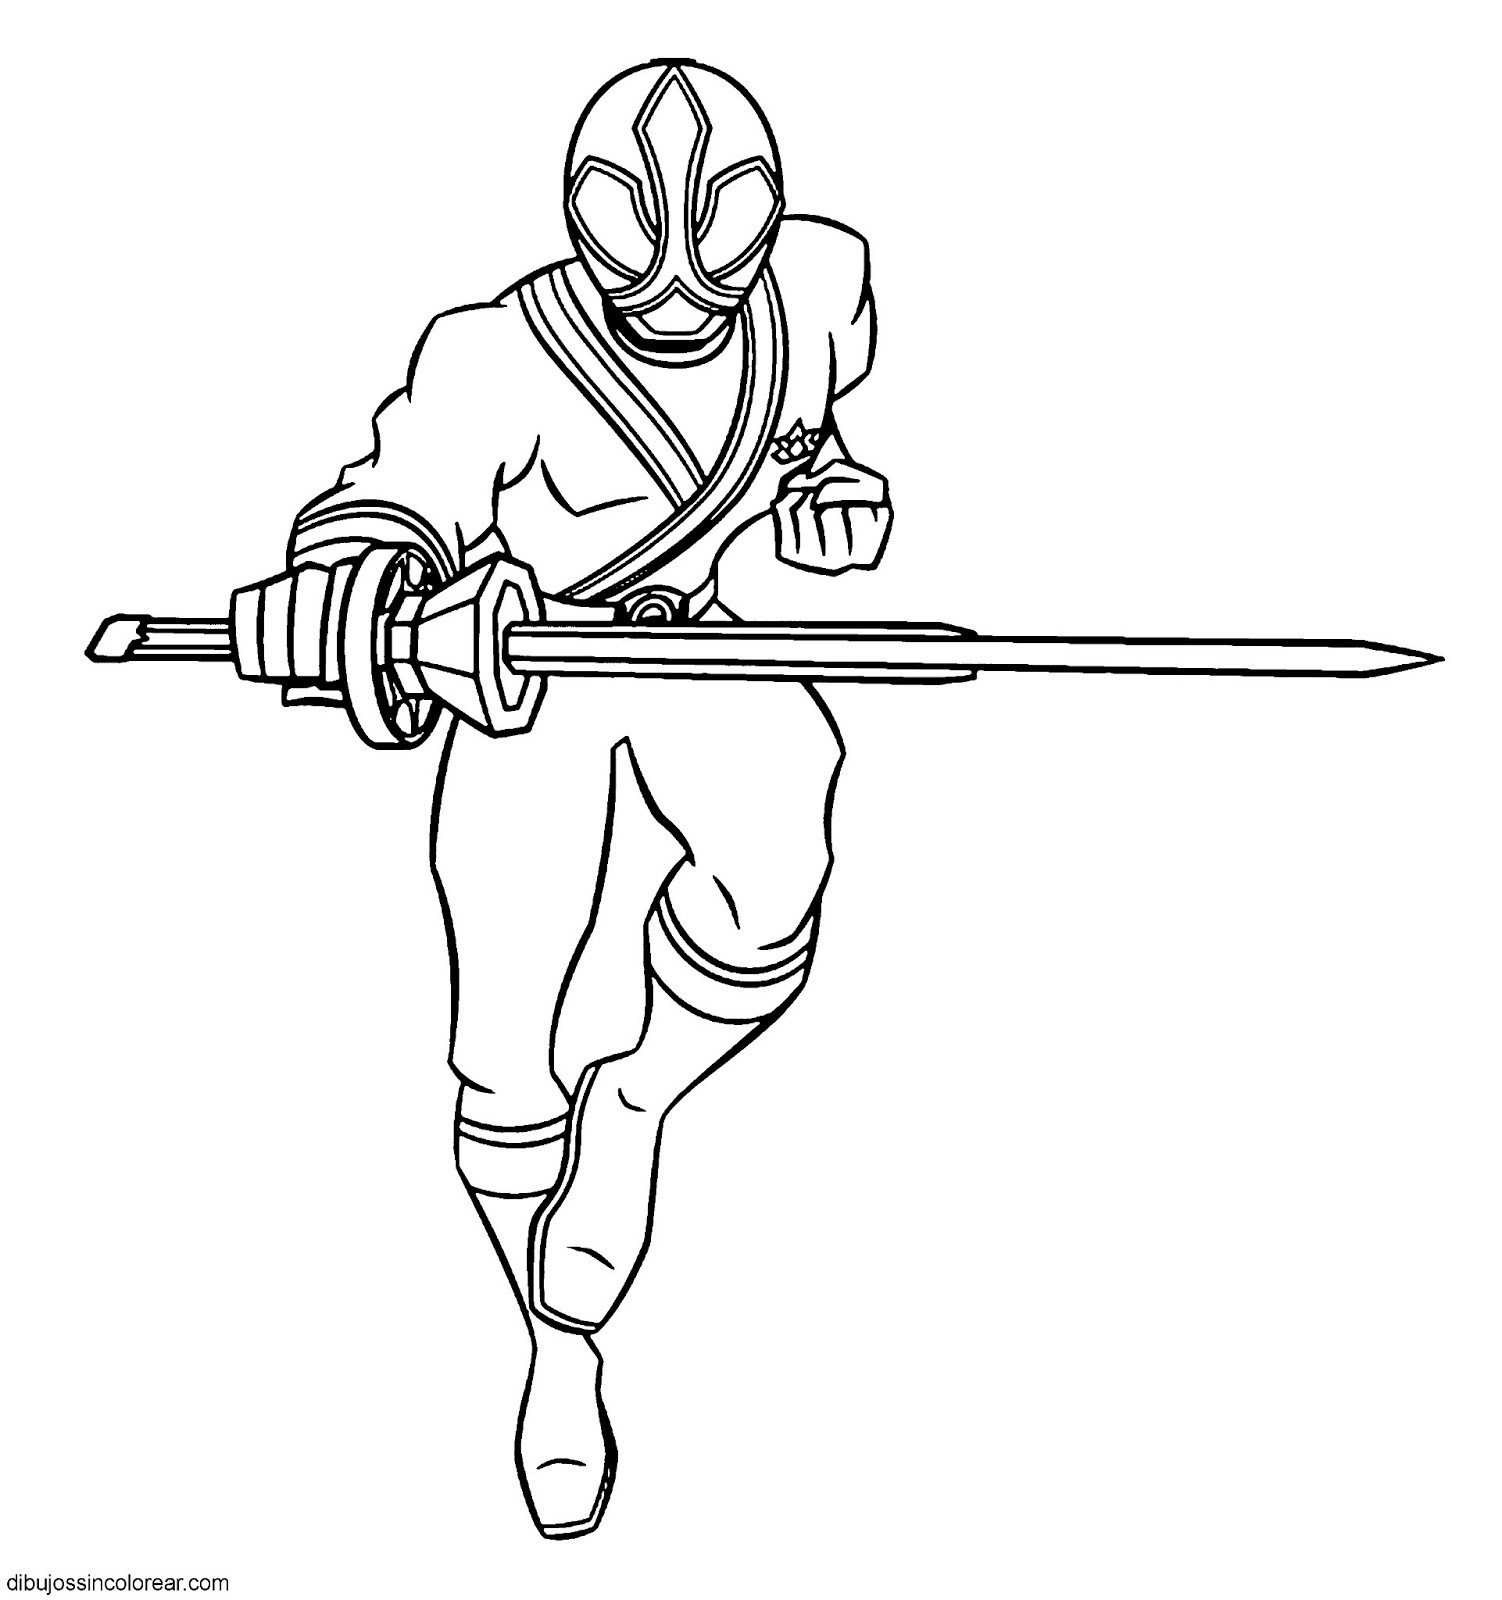 Power Rangers Rpm Coloring Pages Coloring Pages Poweranger Coloring Pagesangers Online Unique